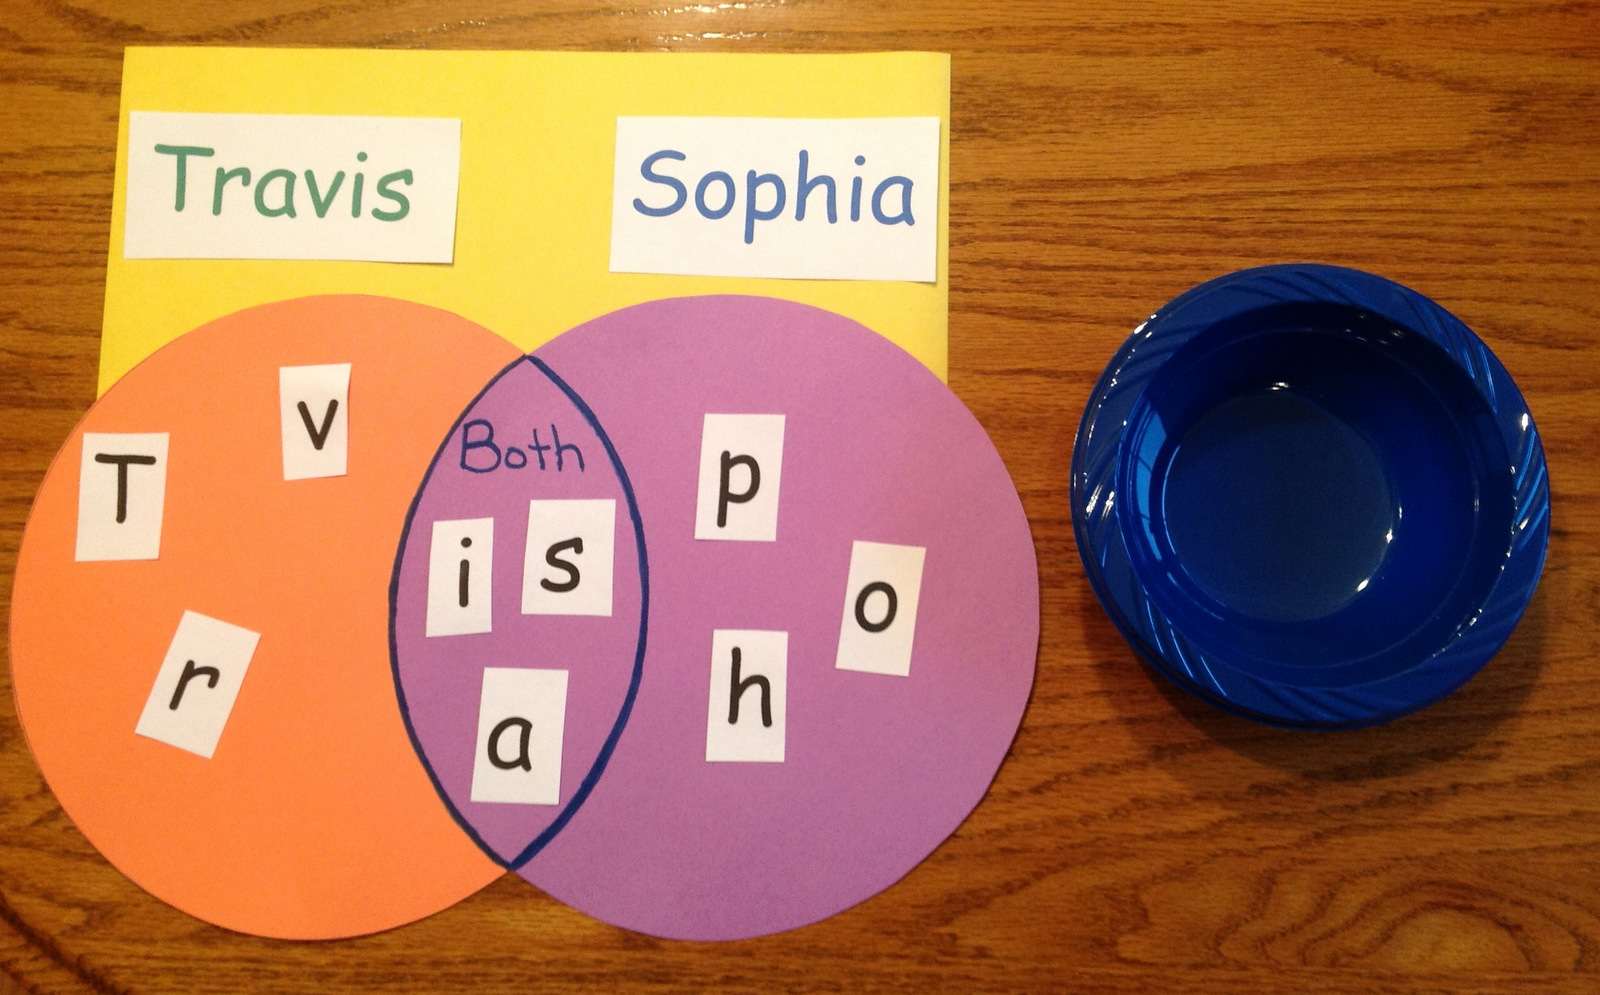 Letter Sorting With Names